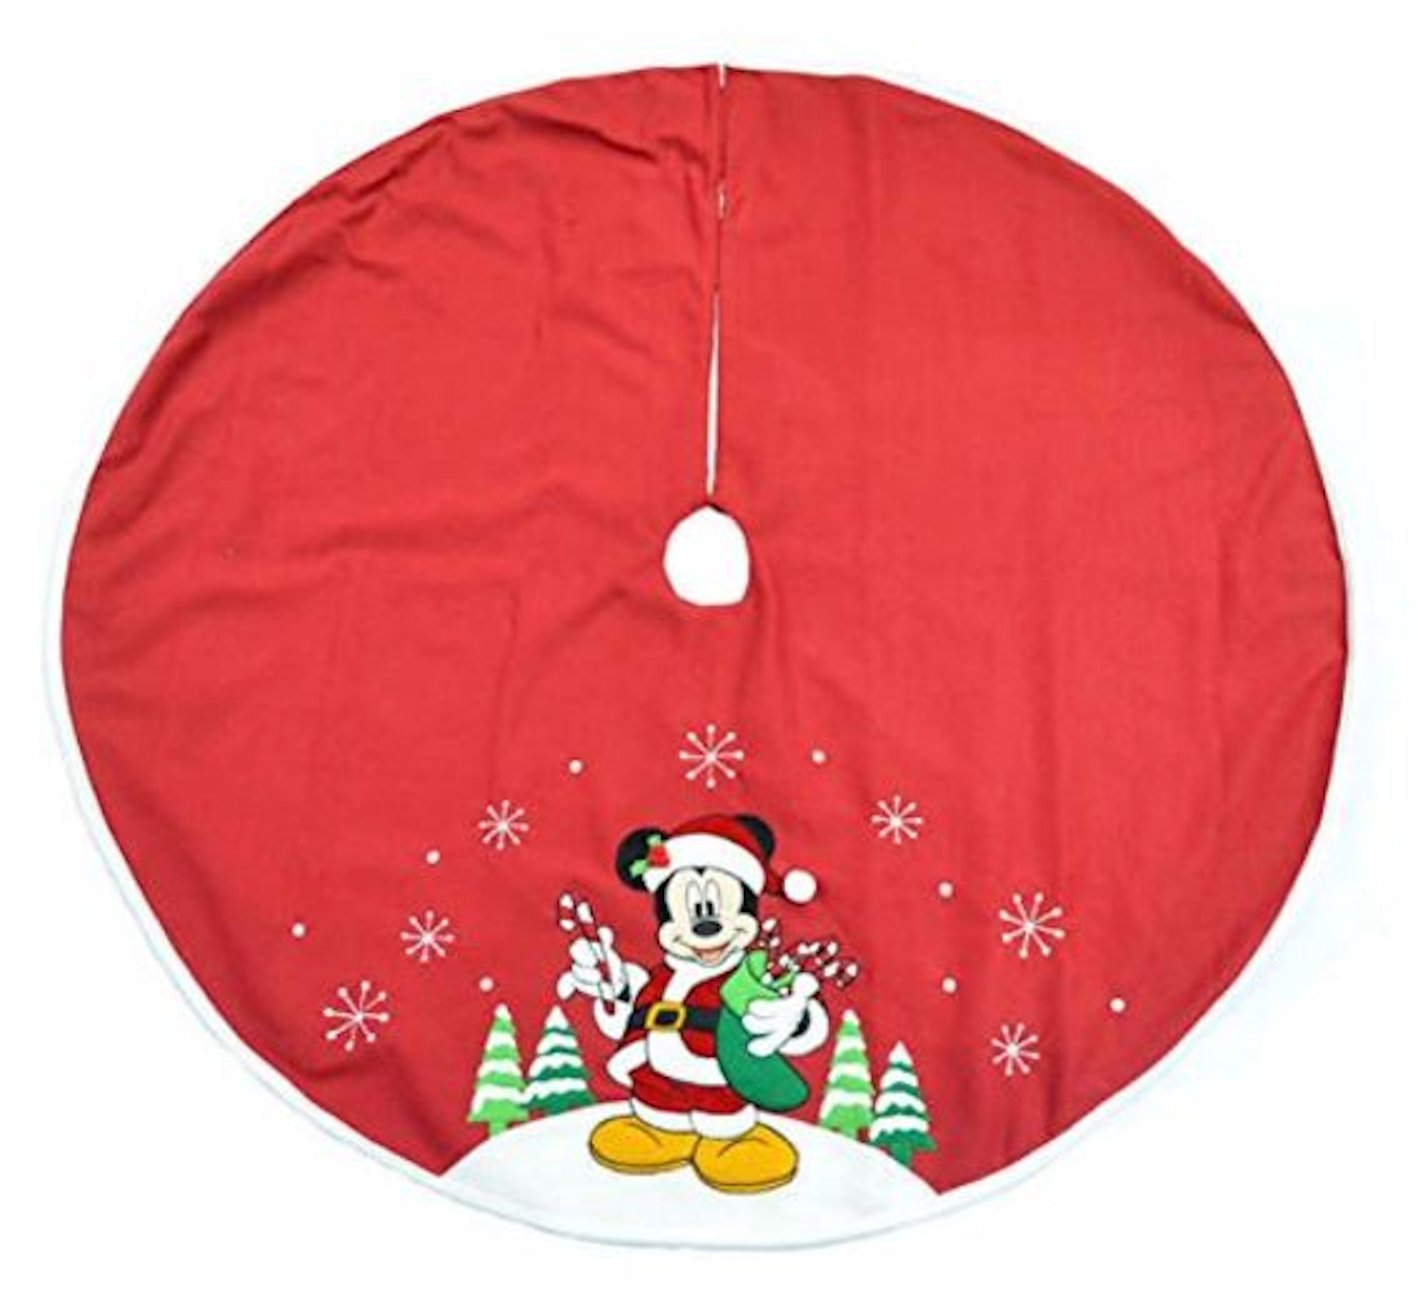 Amazon.com: Disney Mickey Mouse Christmas Tree Skirt (48 Inch ...